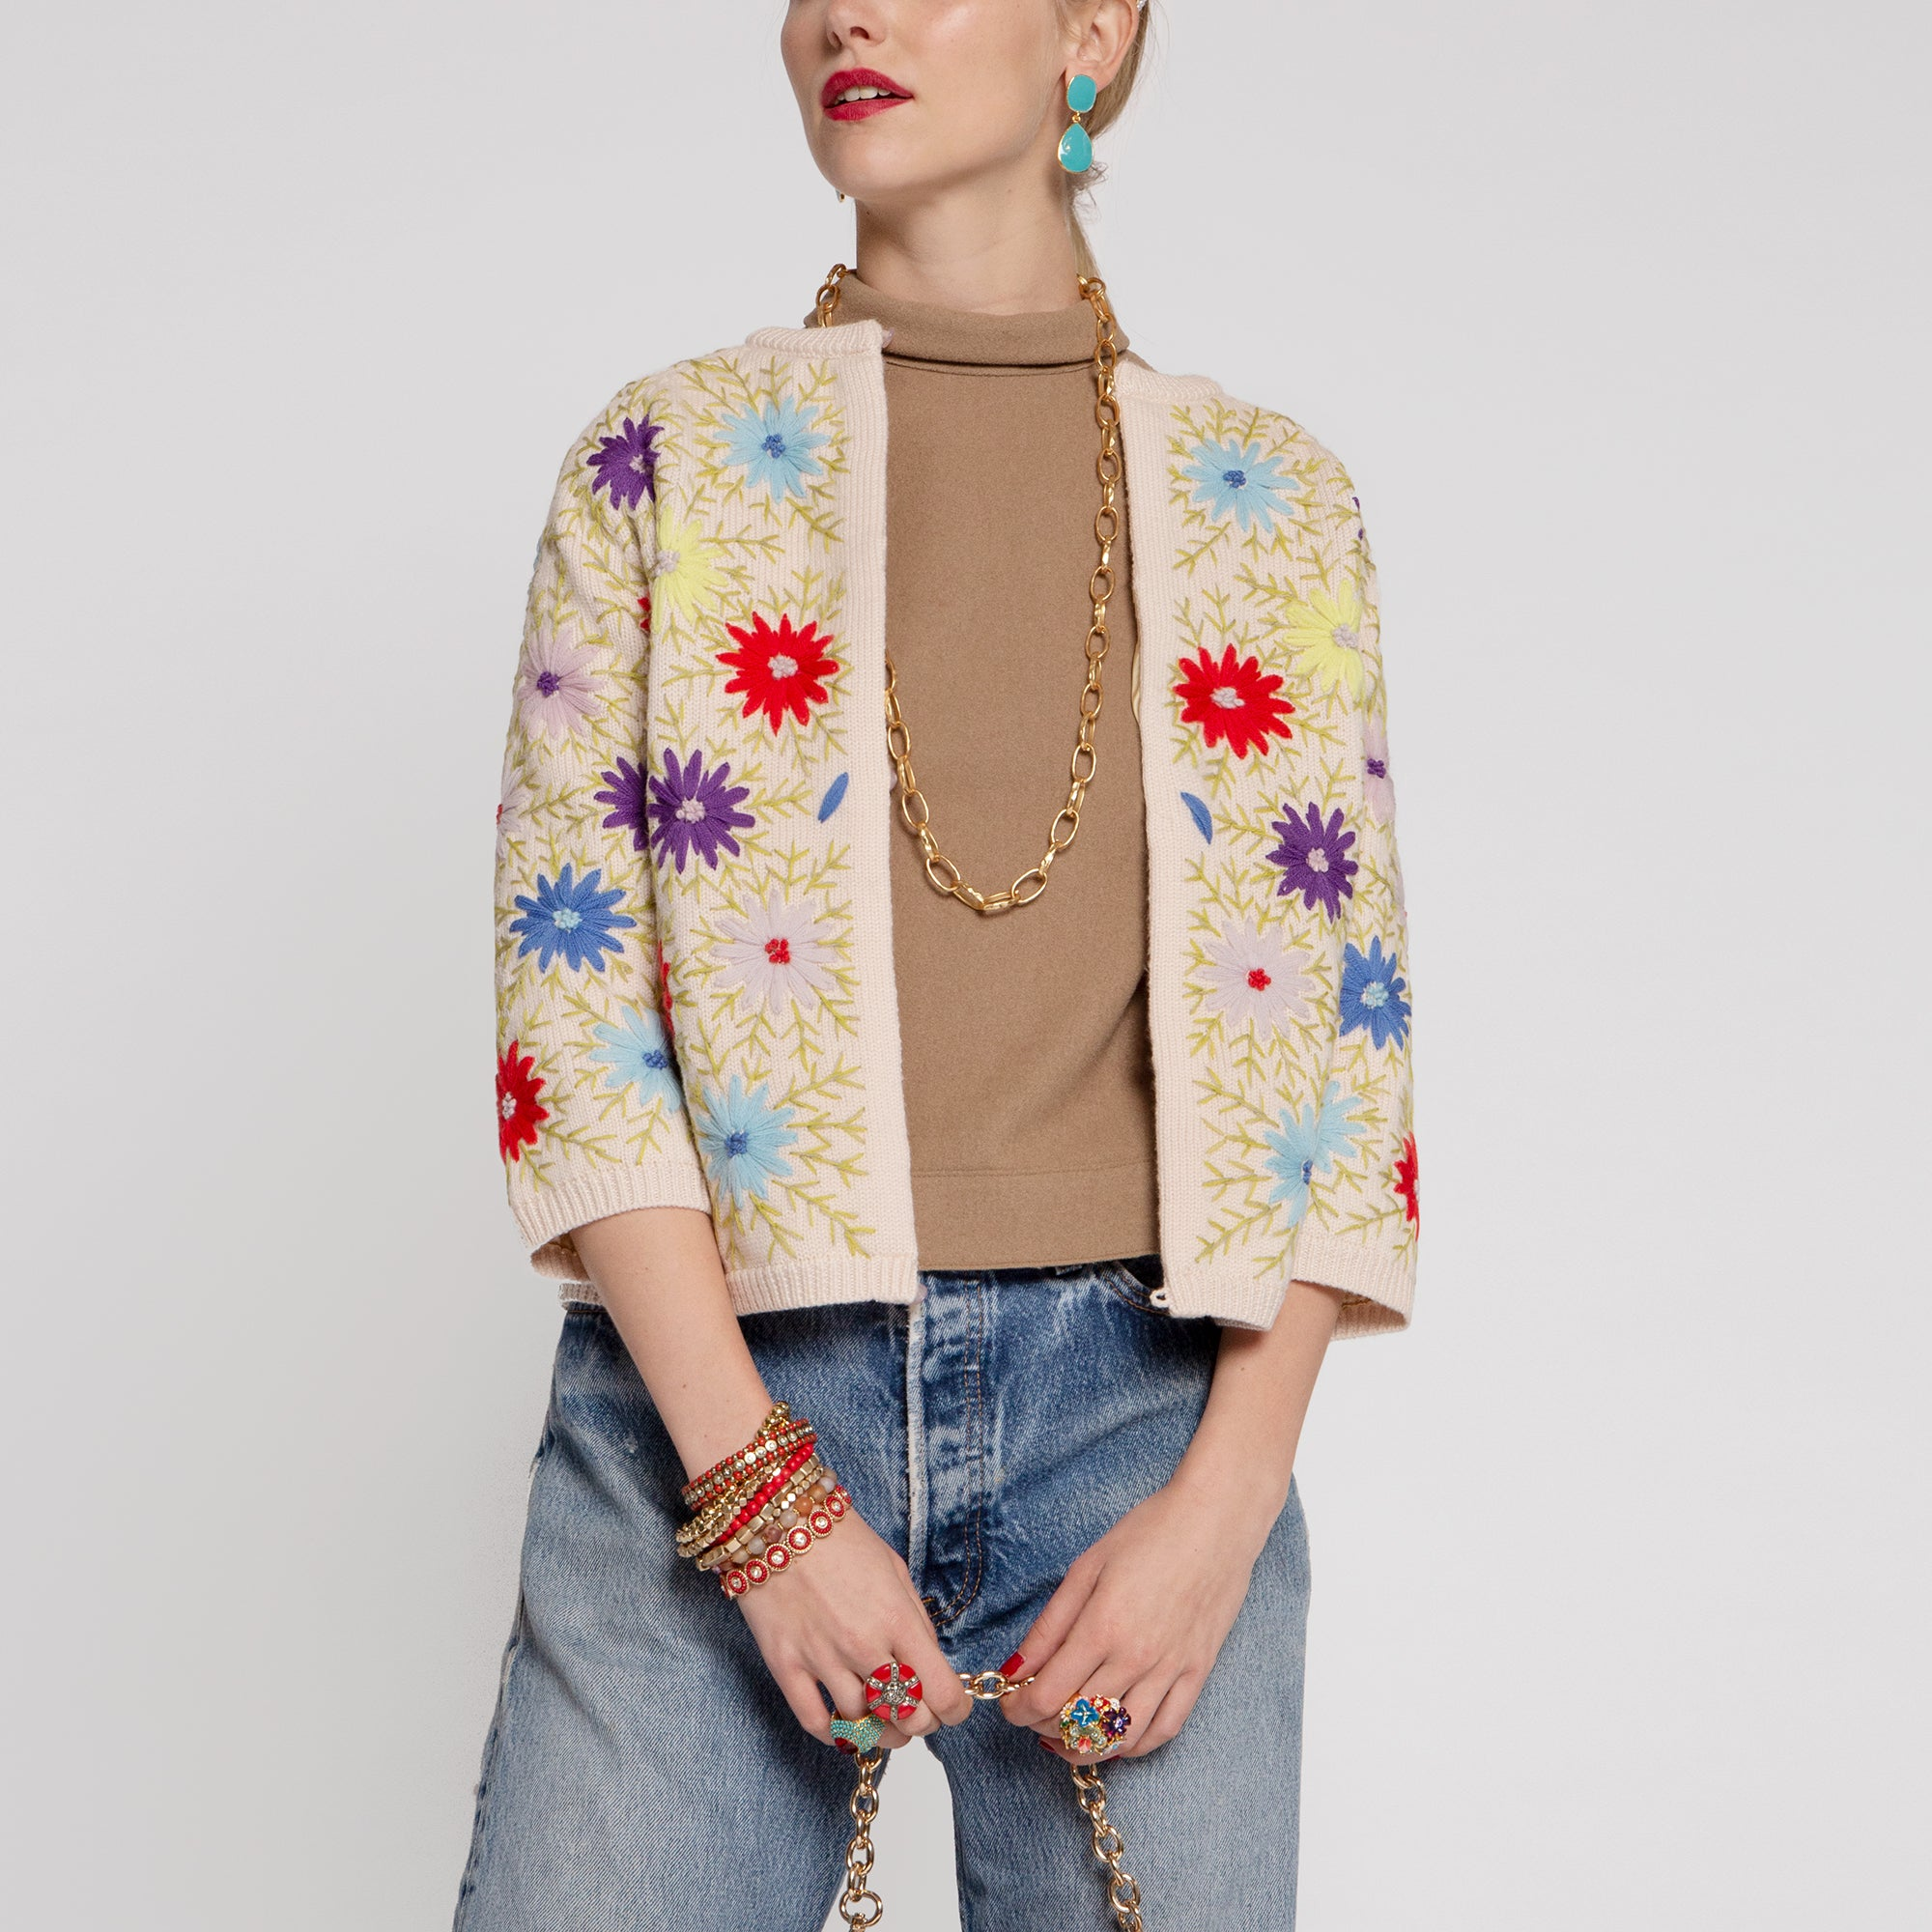 Katy's Flower Cardi Coat